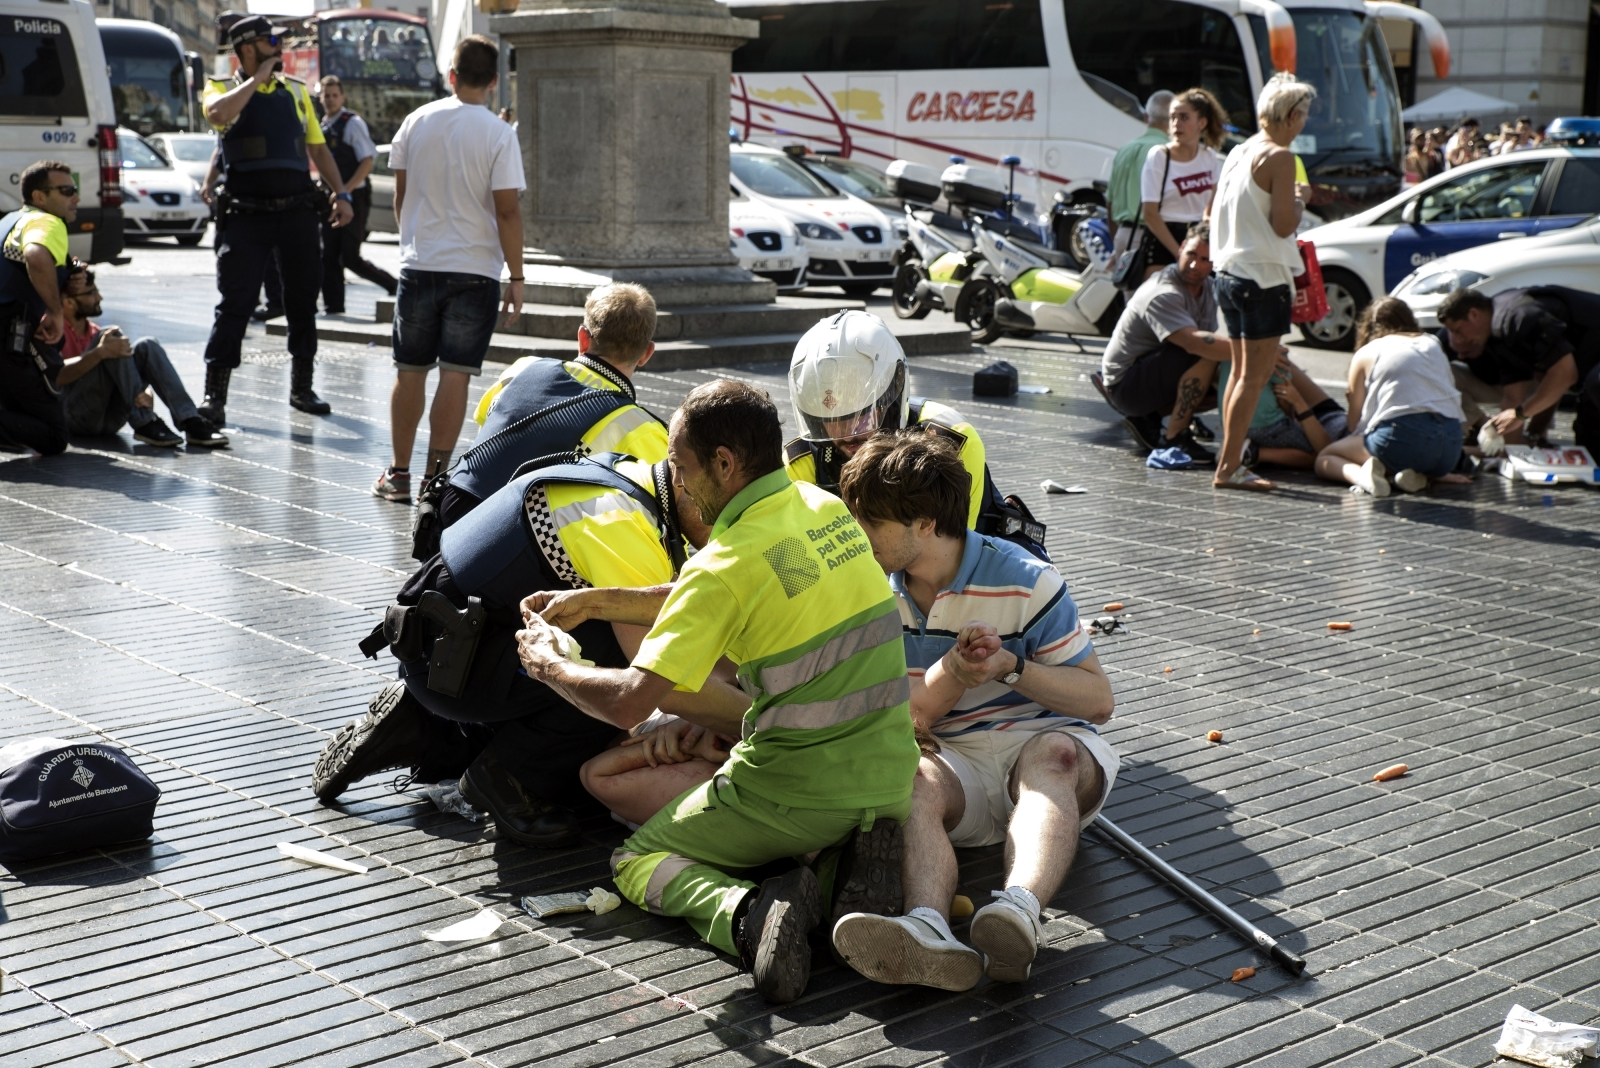 Spain terror cell was planning much bigger attack: Suspect